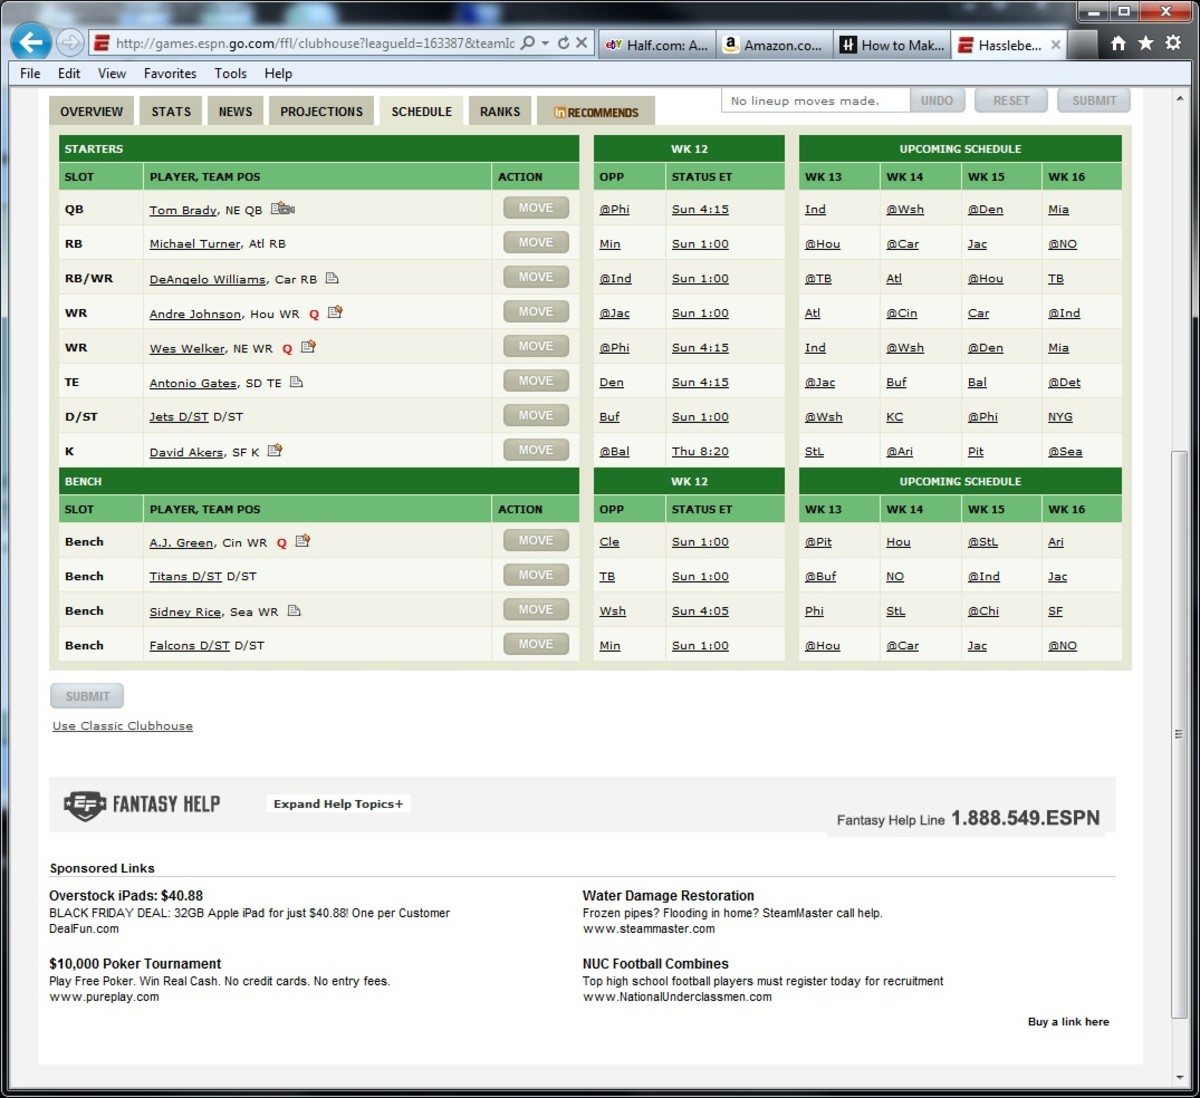 How to Make a Good Trade in Fantasy Football and Win Your League